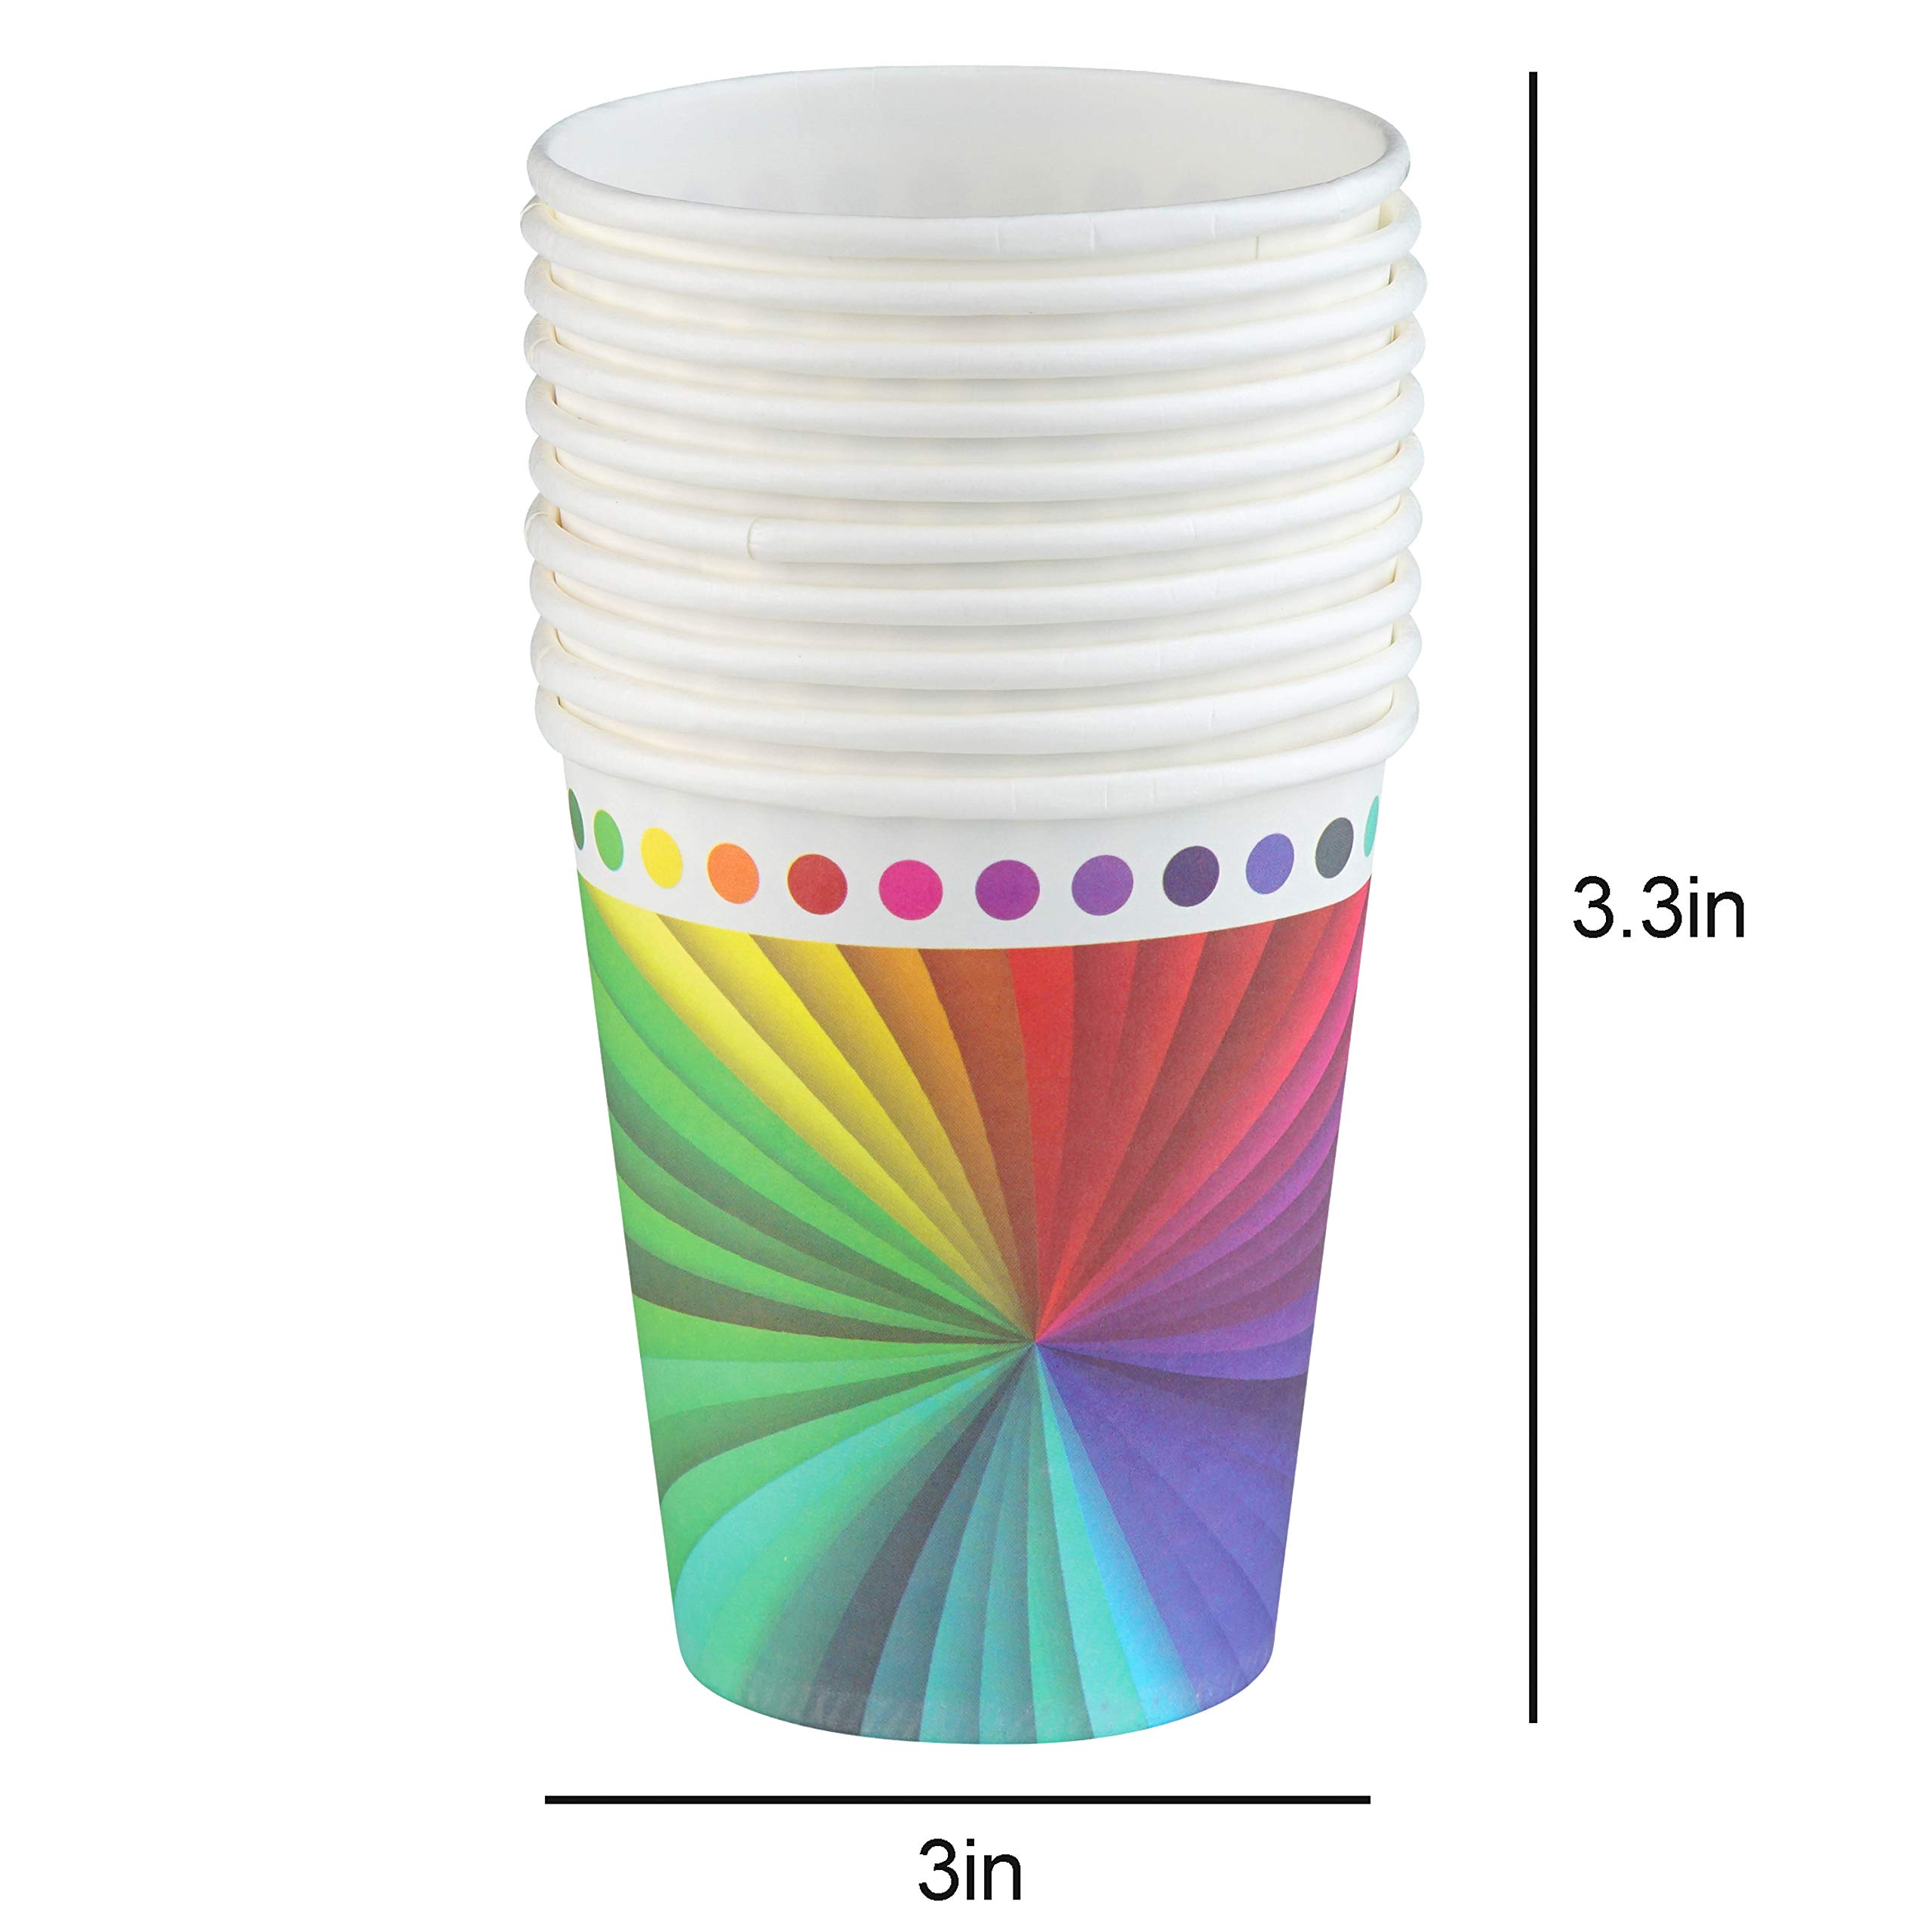 82 Piece Rainbow Party Set Including Banner, Plates, Cups, Napkins and Tablecloth, Serves 20 by Scale Rank (Image #4)